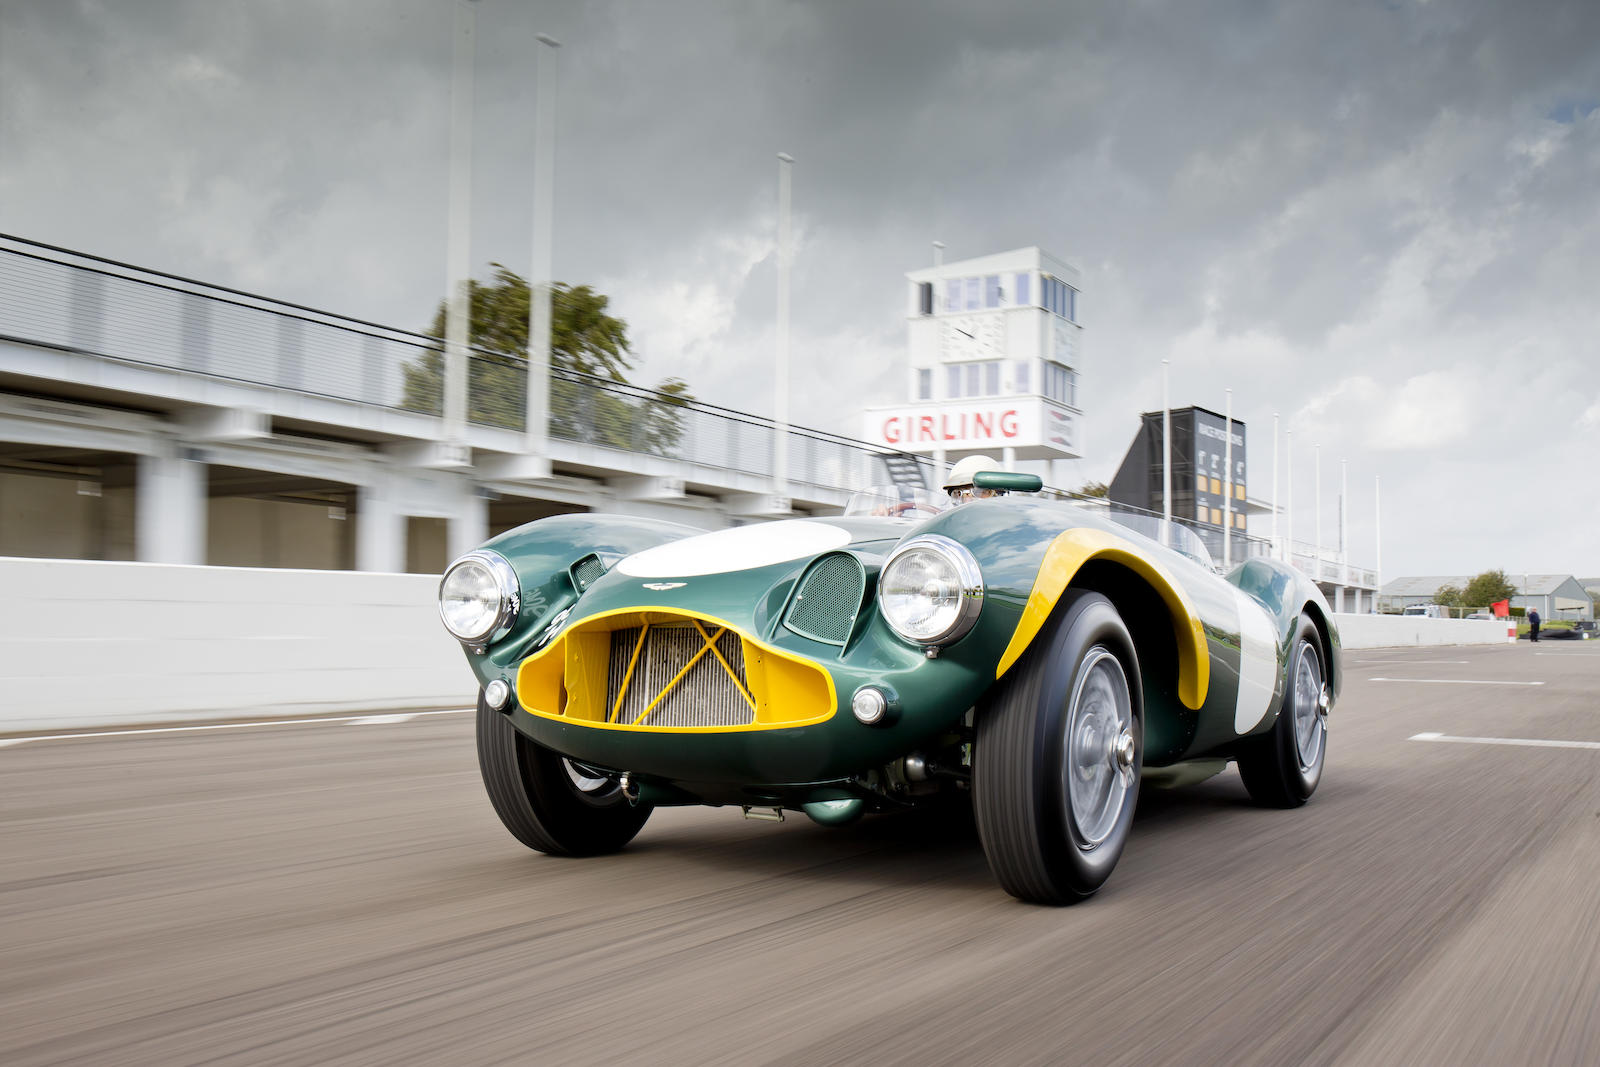 1953 Aston Martin Db3s Is A Magnificently Retro Racing Car Autoevolution